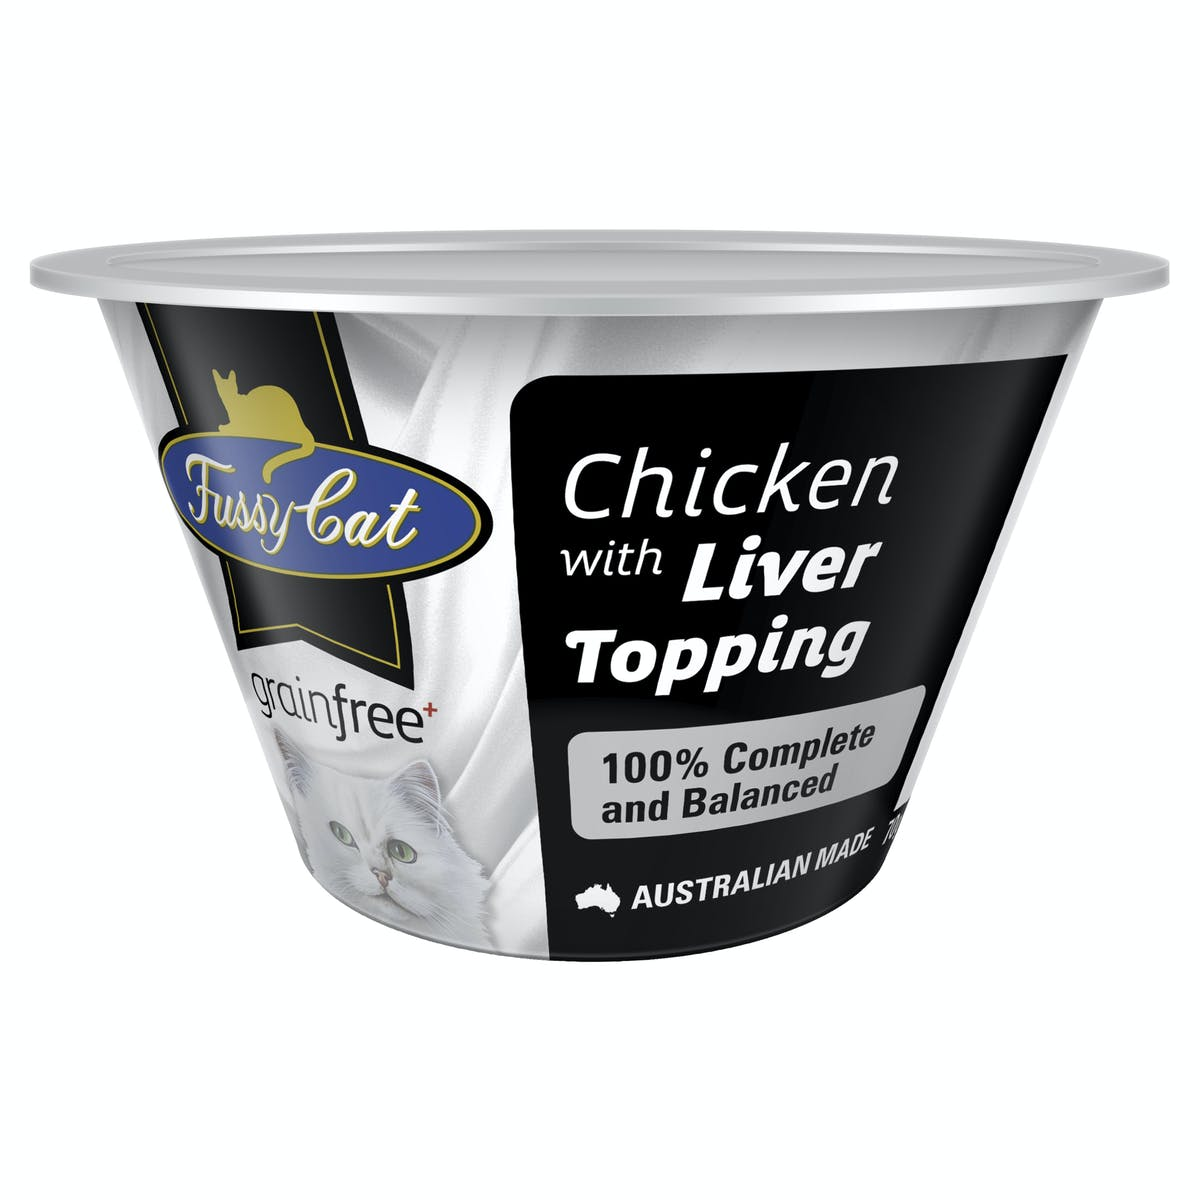 Fussy Cat | Chicken with Liver Topping 70g | Chilled cat food | Front of pack